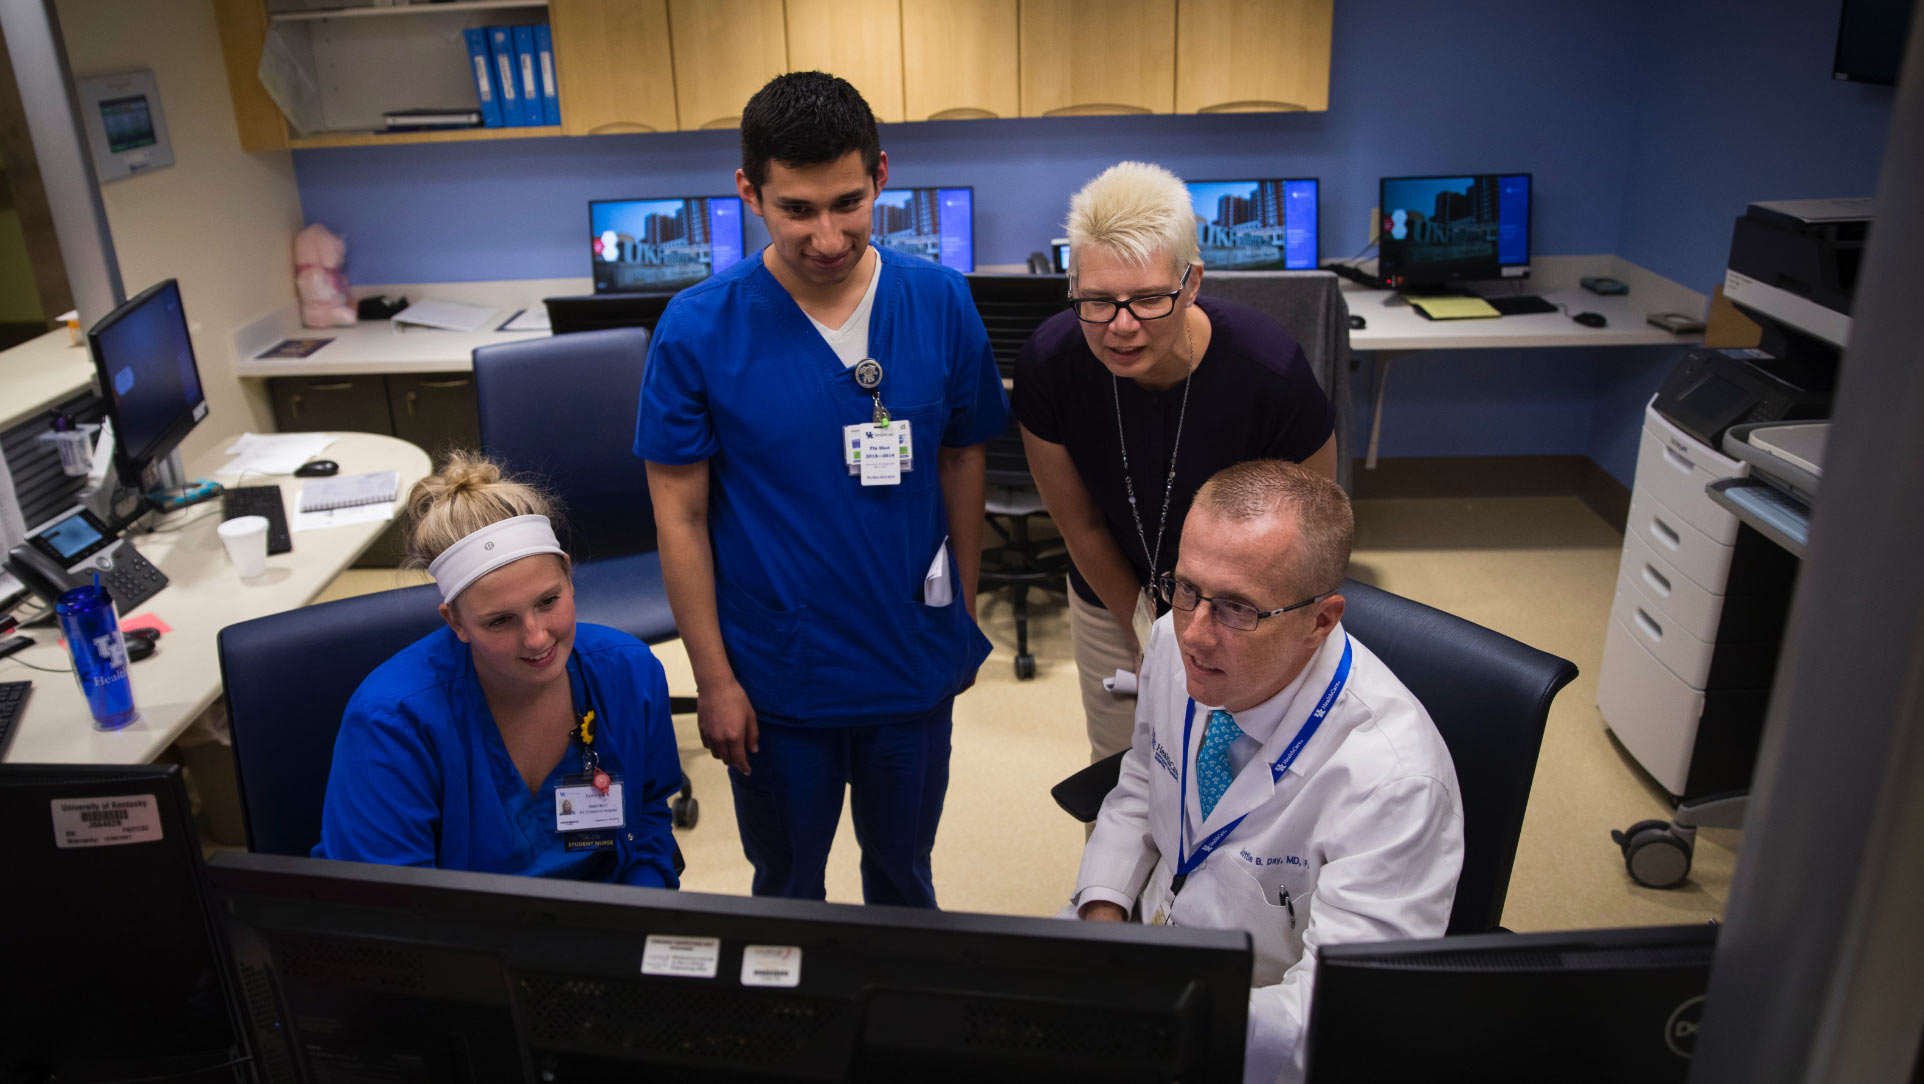 Dr. Day, dressed in a white doctor's coat and tie, sits in a chair as he looks at a computer with three of his co-workers sitting and standing next to him.